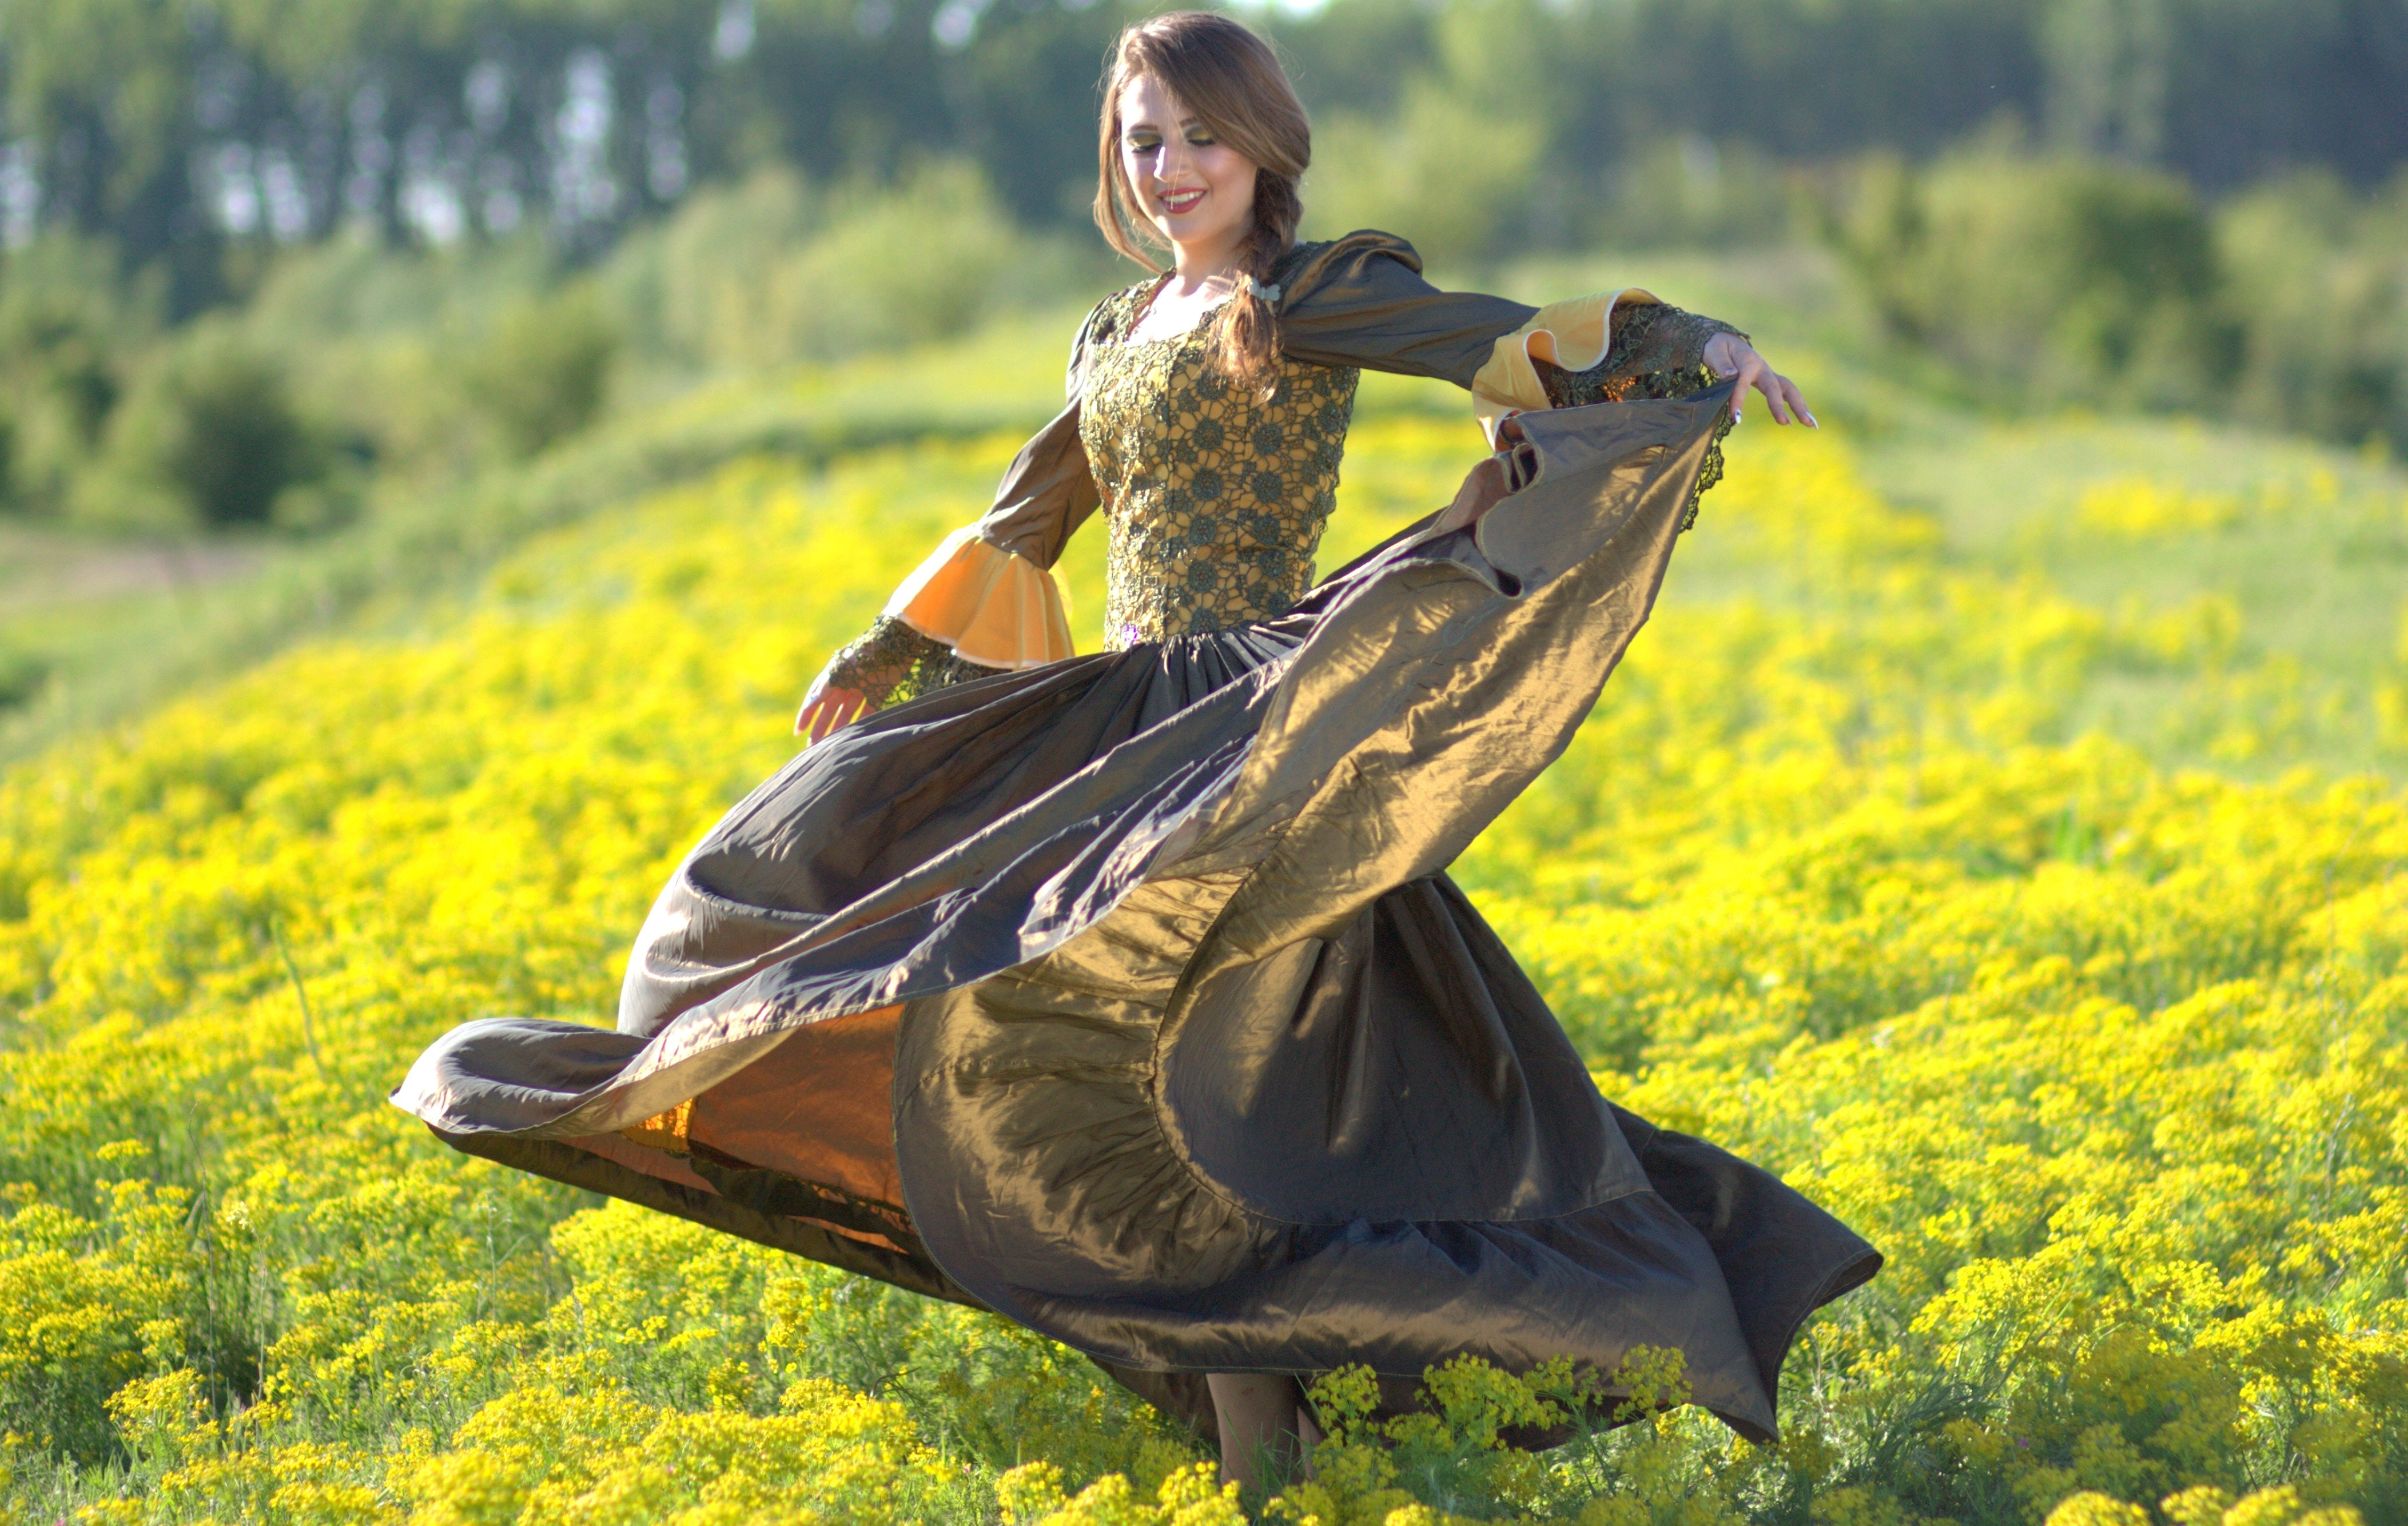 Woman on Princess Costume Waving Her Dress on Green Flower Fields, Blur, Close-up, Dress, Field, HQ Photo